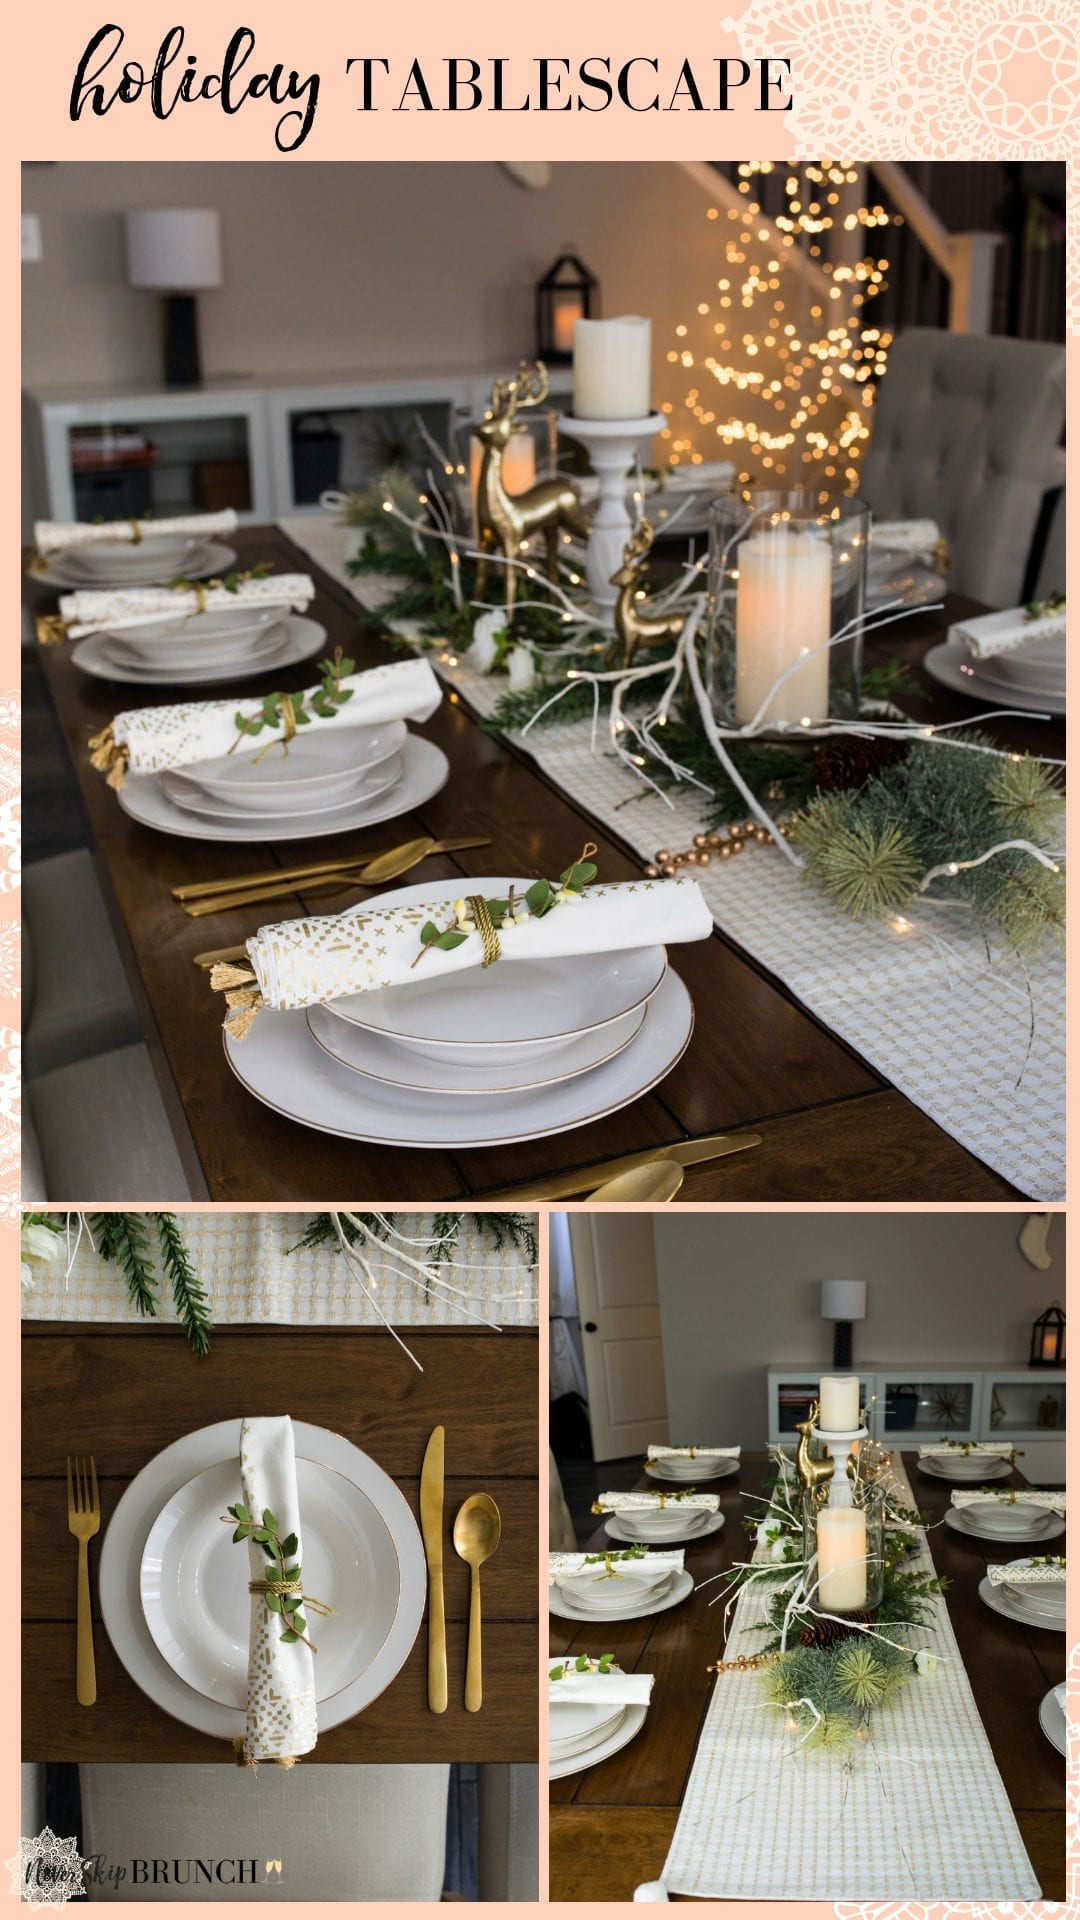 christmas decor ideas | holiday decor christmas table | christmas table decor white | christmas tablescapes | christmas table decorations | christmas decor white and gold | never skip brunch by cara newhart #decor #christmas #holiday